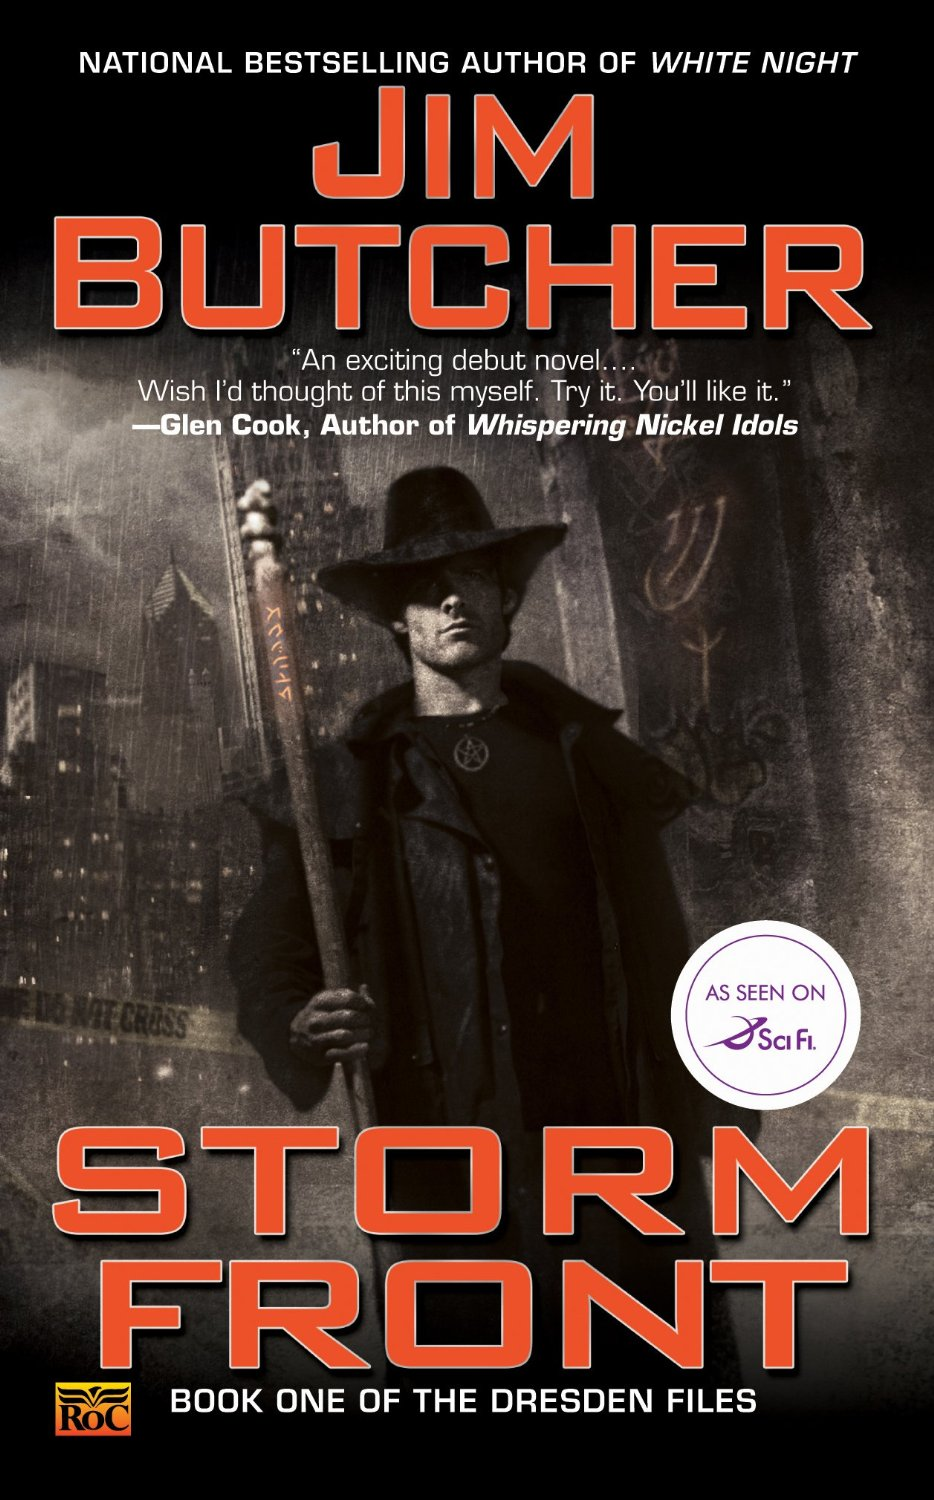 Photo of the cover of Storm Front